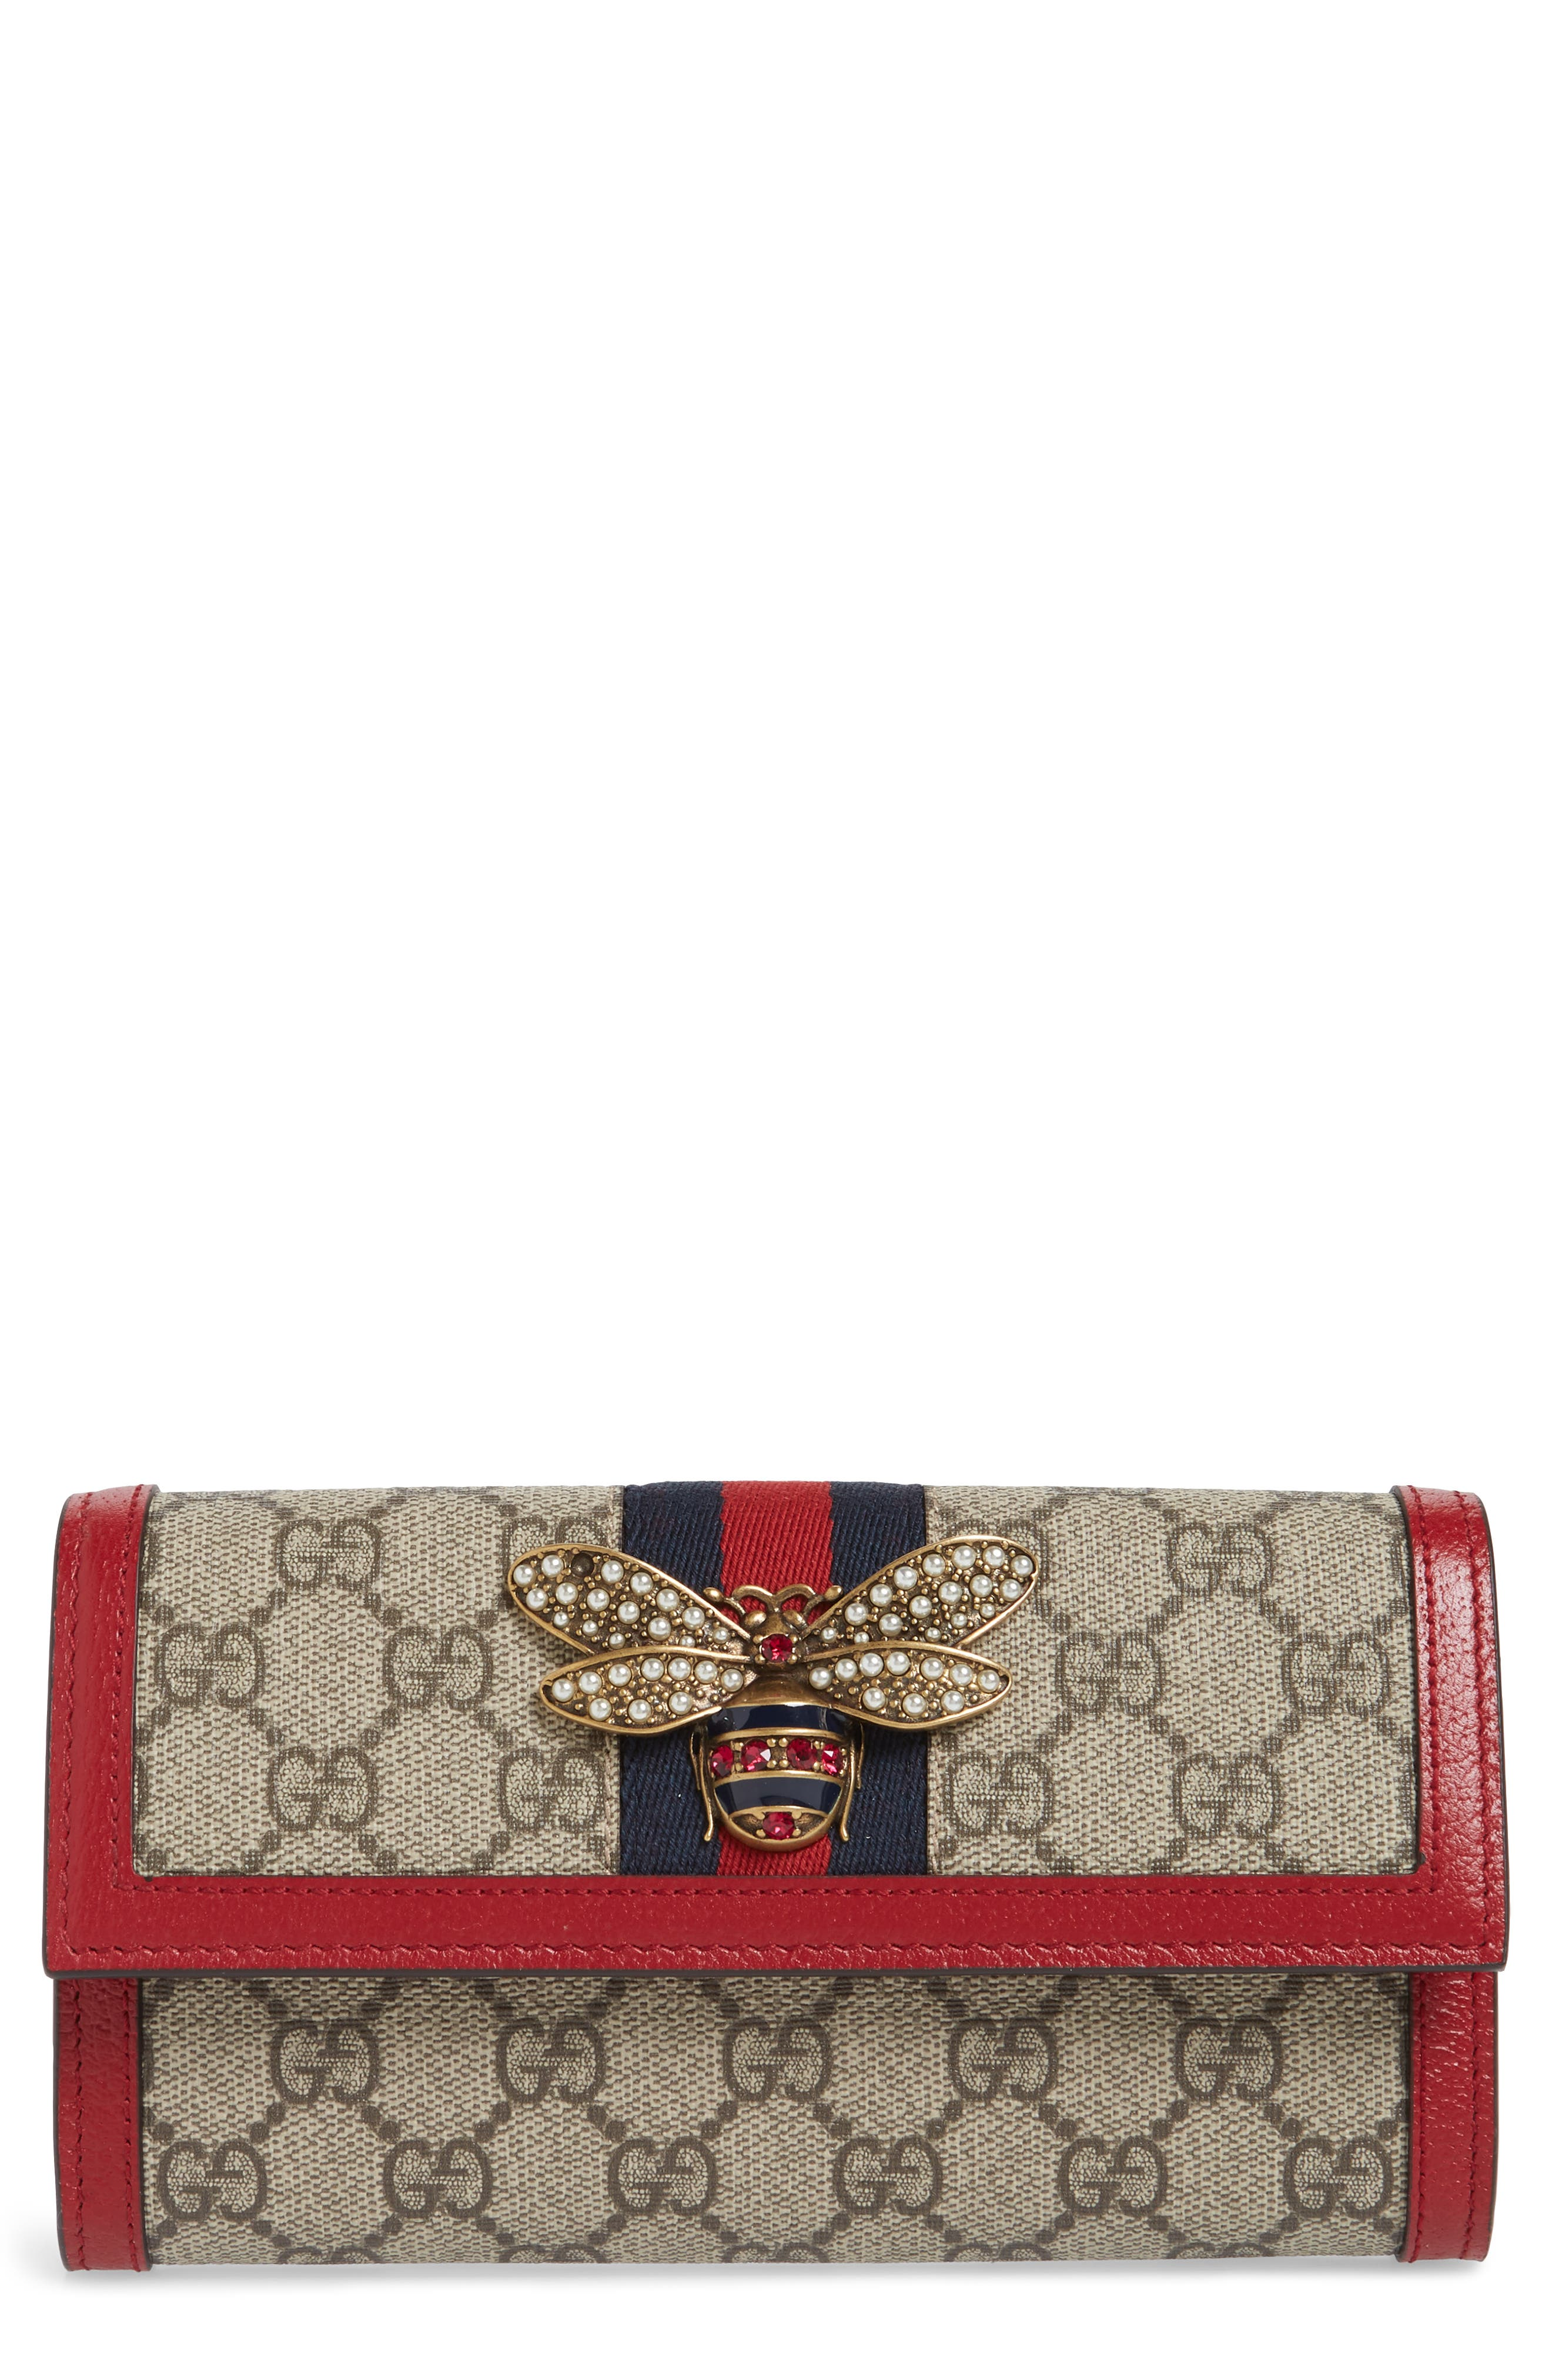 Queen Margaret GG Supreme Canvas Flap Wallet,                         Main,                         color, BEIGE EBONY/ BLUE RED/ RUBY